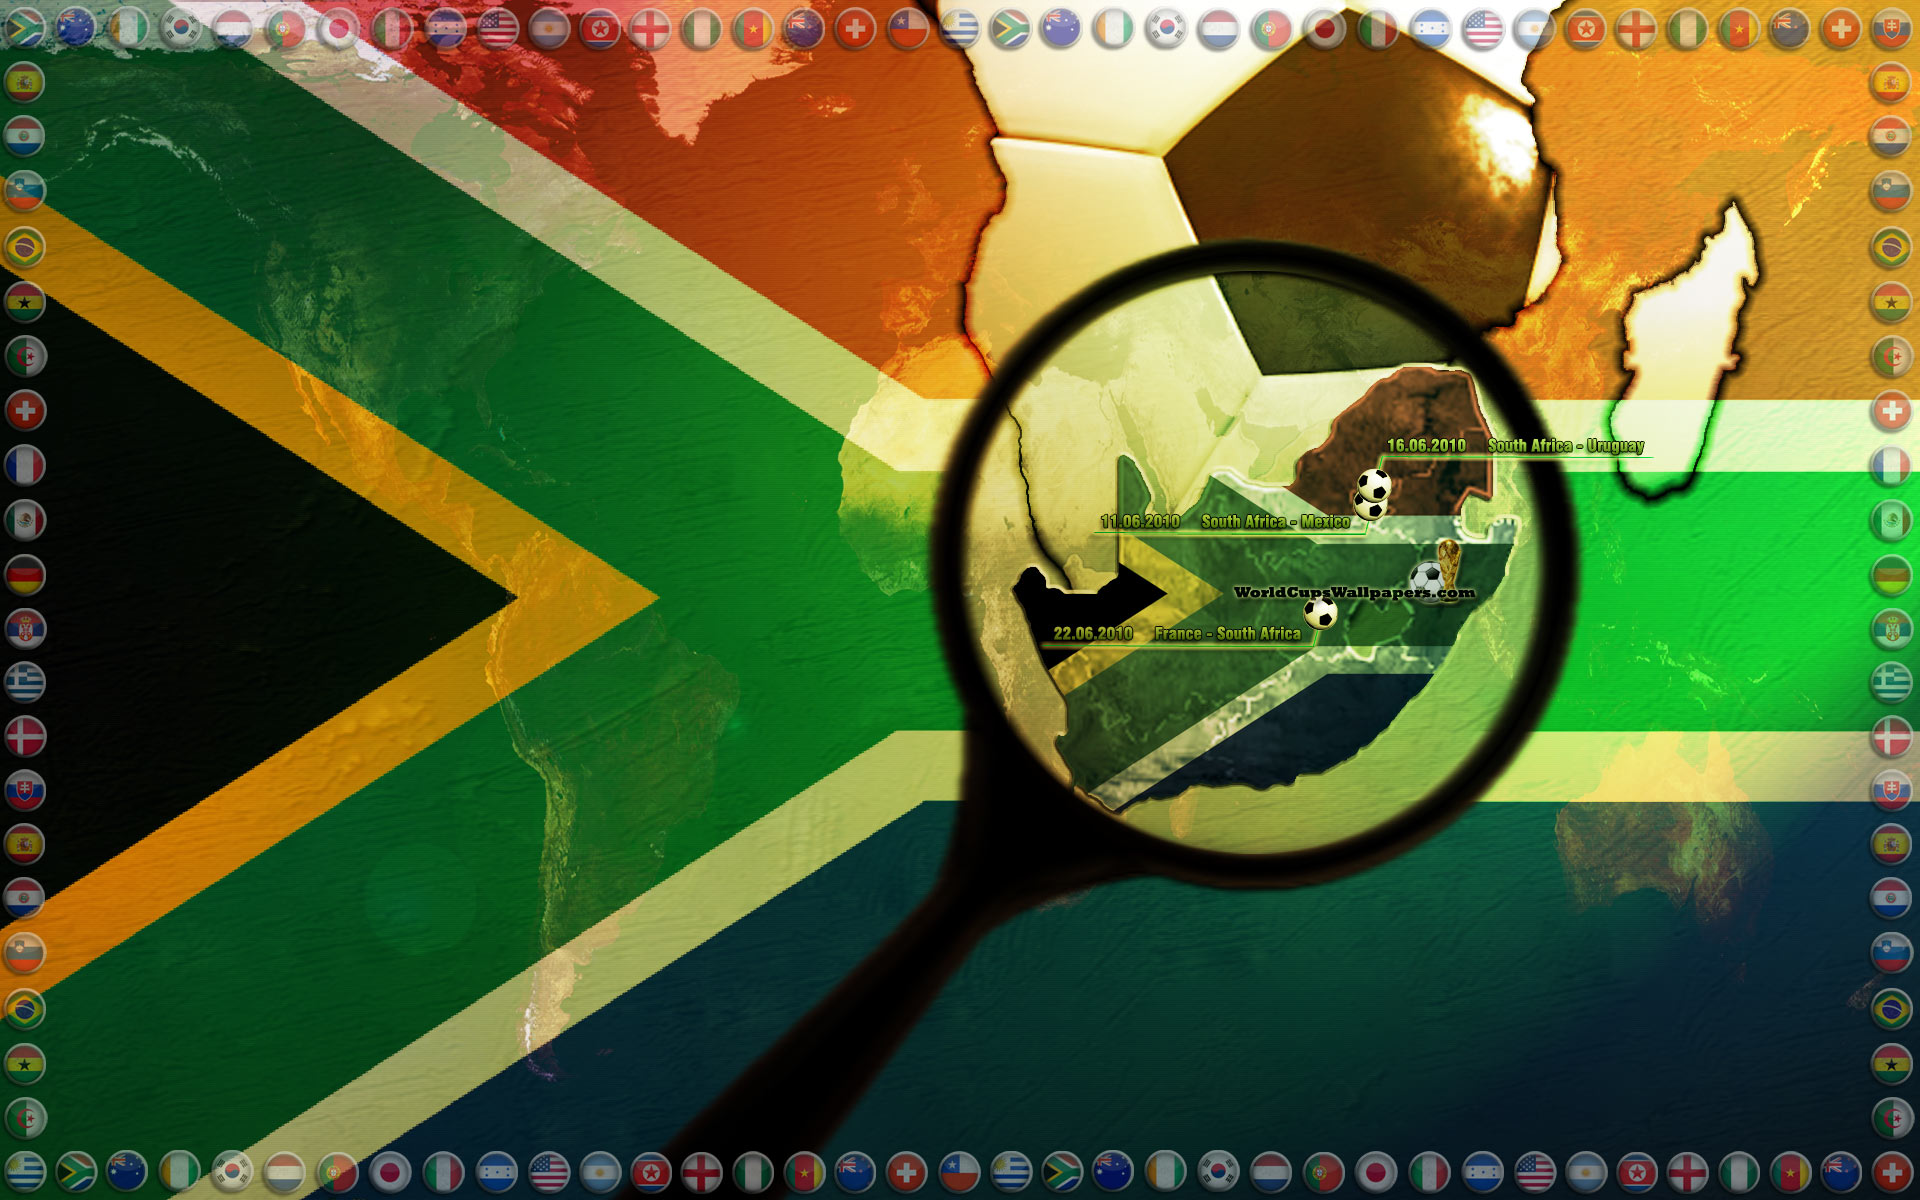 south africa World Cup wallpaper Football Pictures and Photos 1920x1200